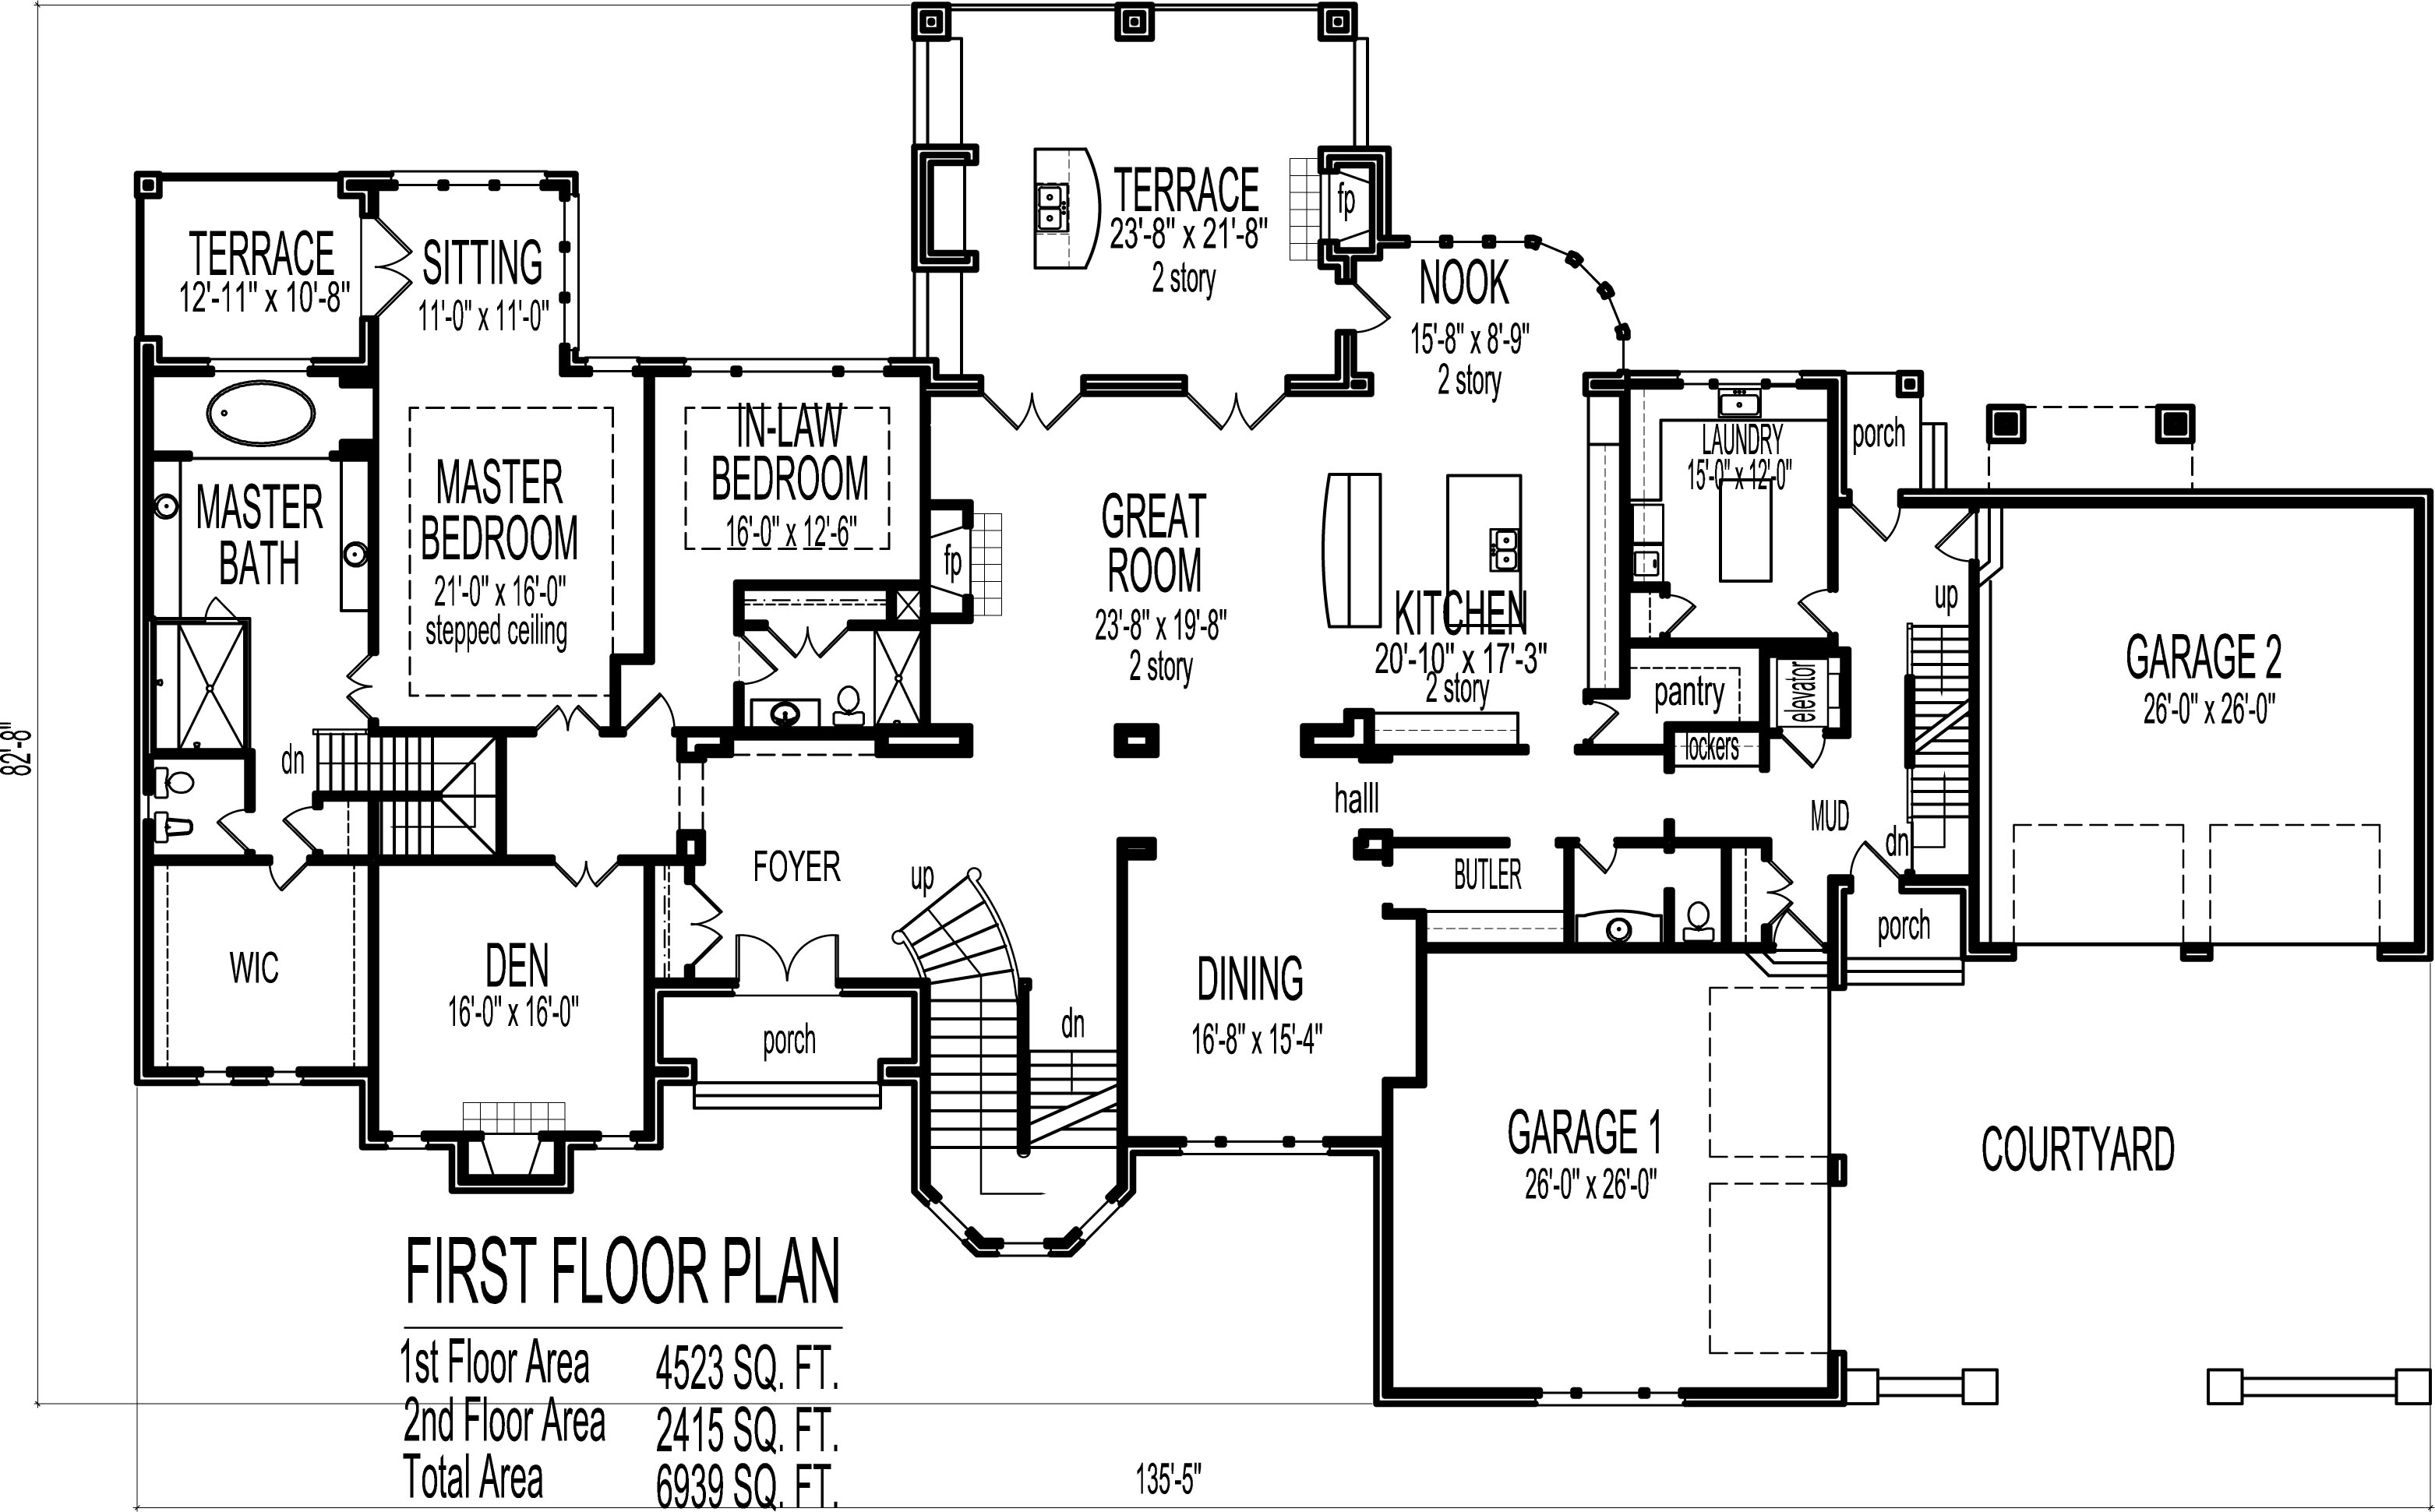 Dream house floor plans blueprints 2 story 5 bedroom large for 5 bedroom house layout